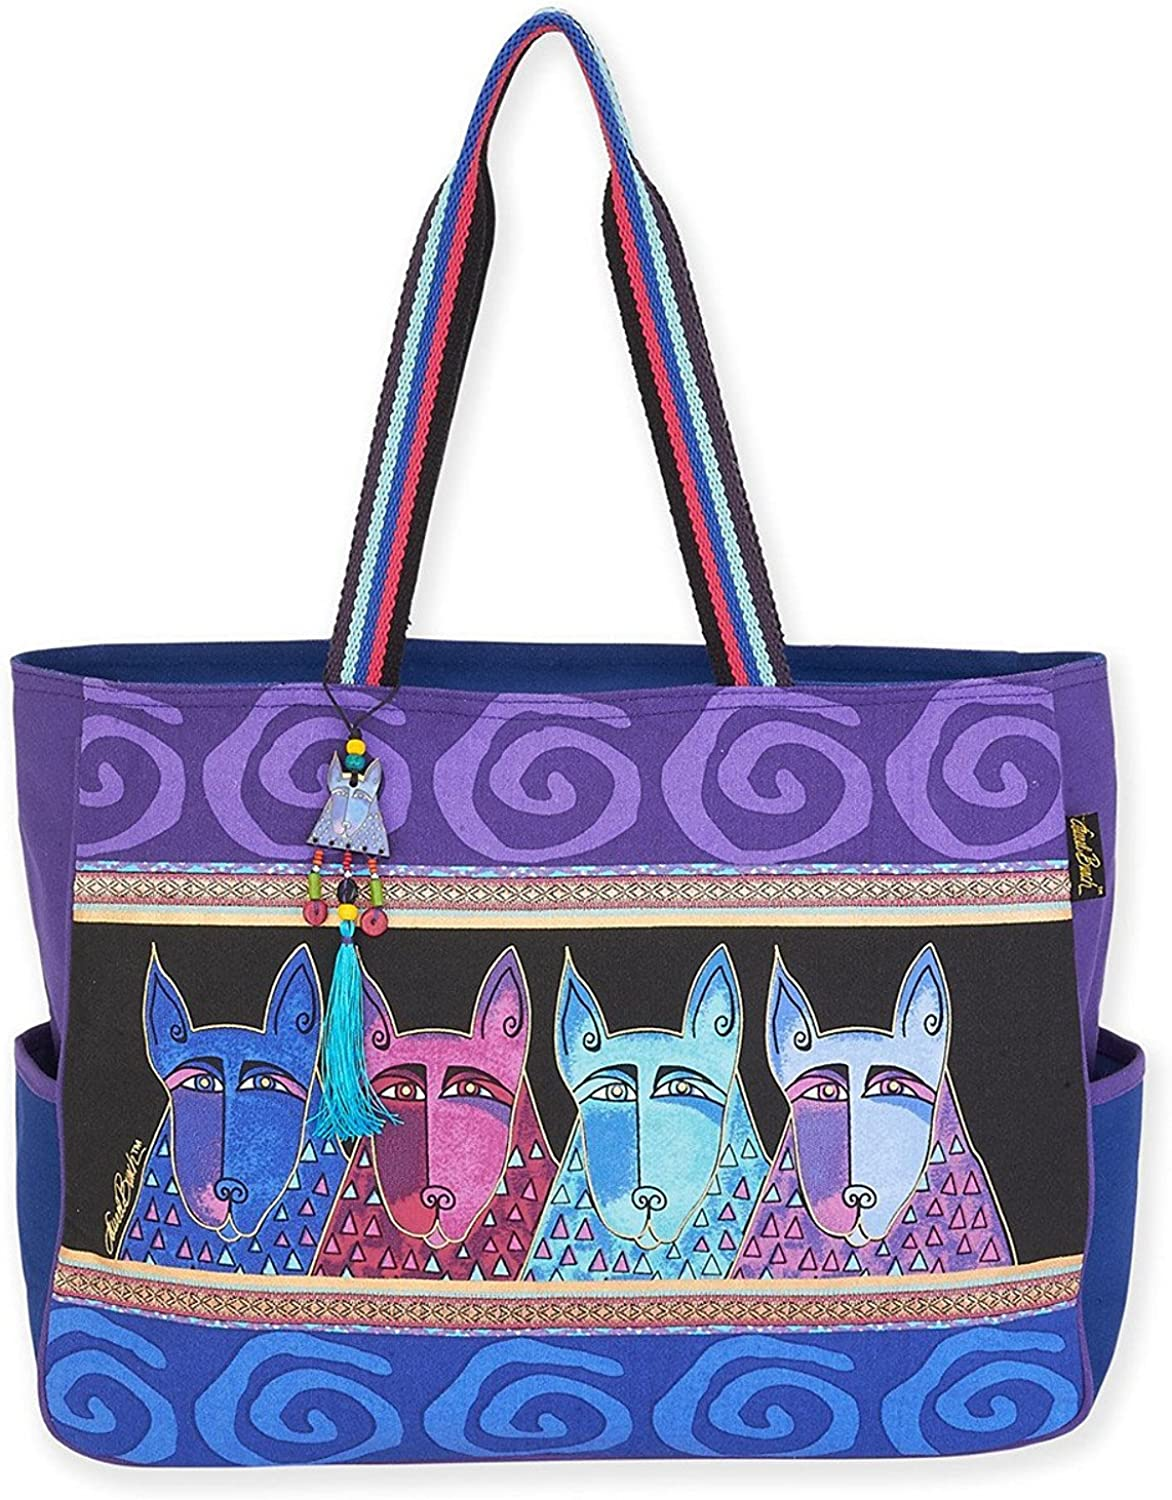 Laurel Burch Canine Tribe Oversized Dog Tote Handbag Purse